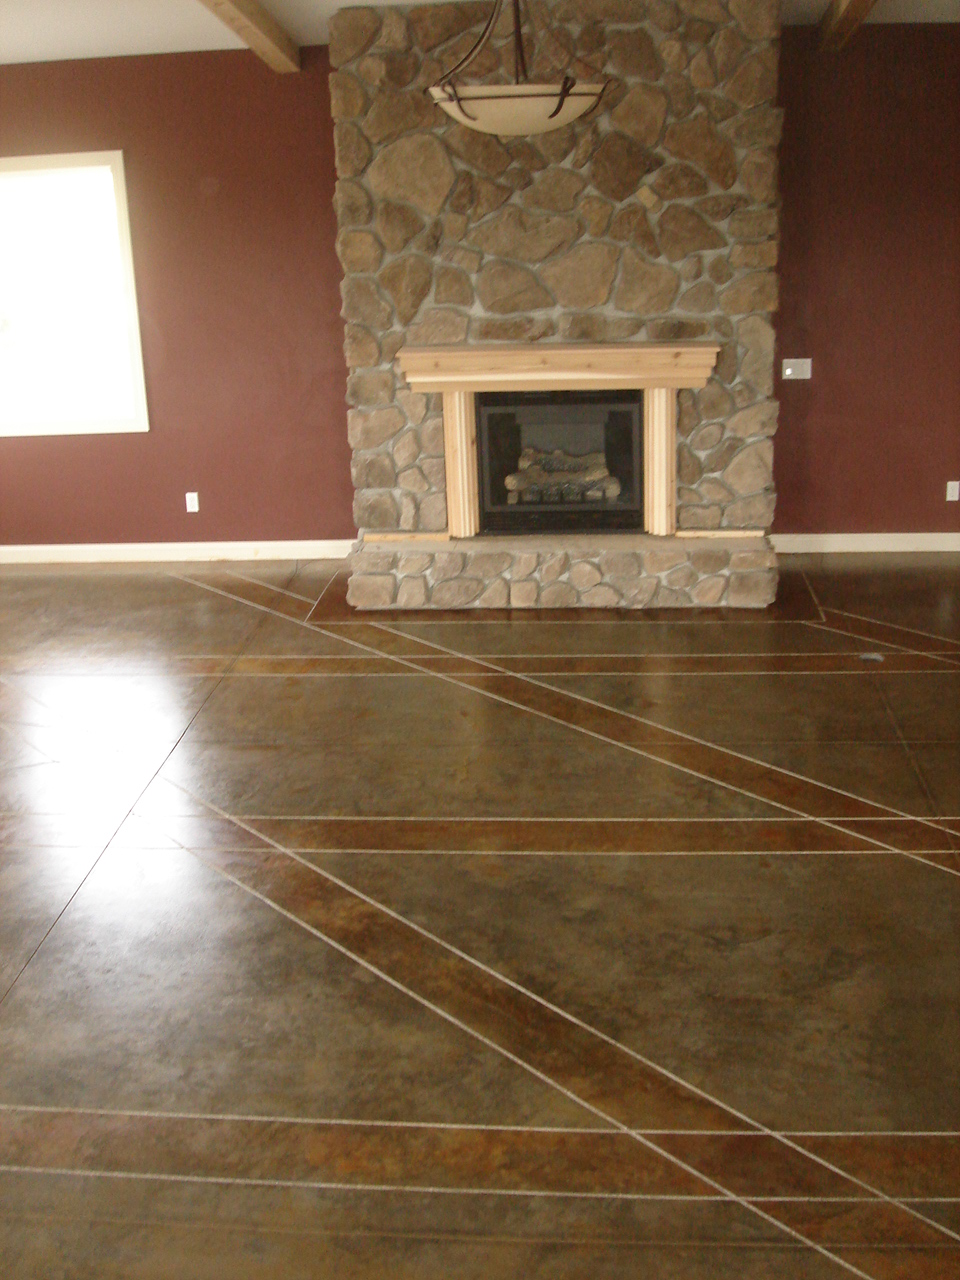 Acid stained floors are a staple of interior decorative concrete. They can be an excellent source of jobs during winter months.